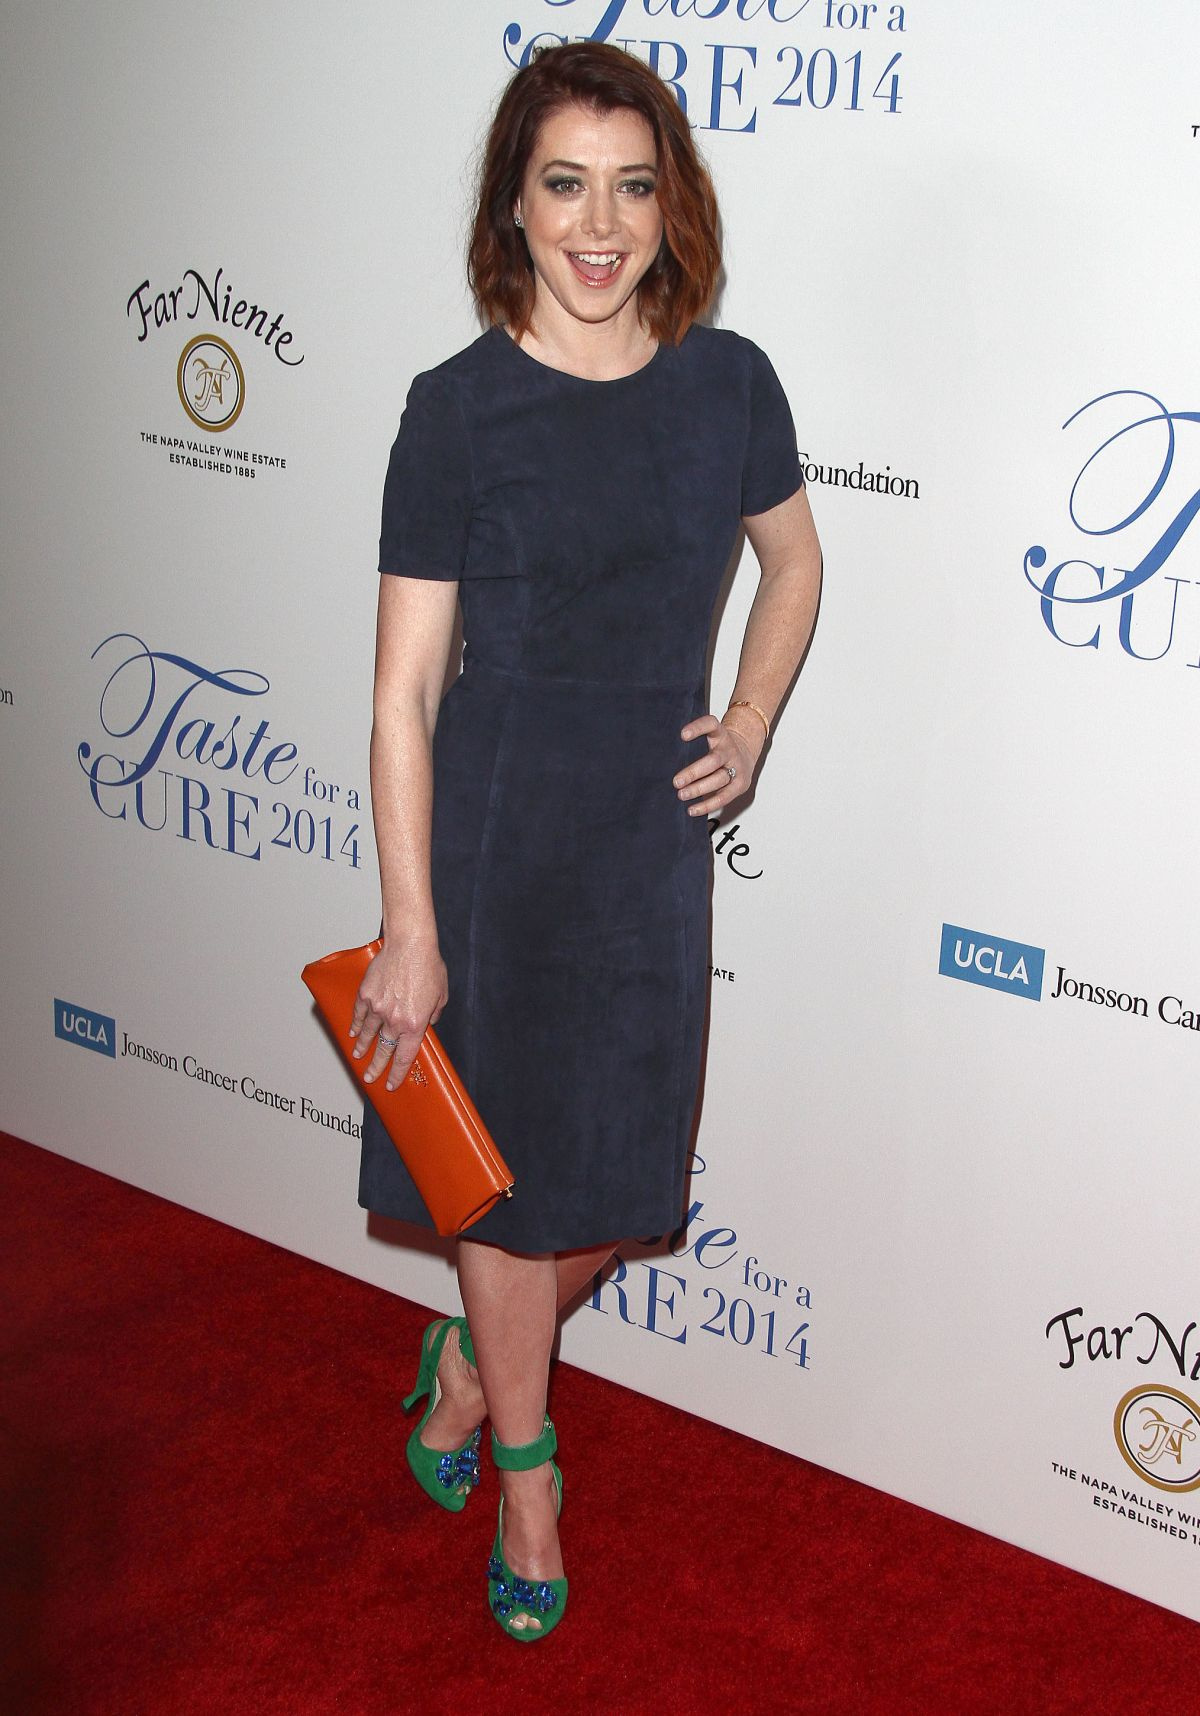 ALYSON HANNIGAN at Jonsson Cancer Center Foundation's Taste for a Cure